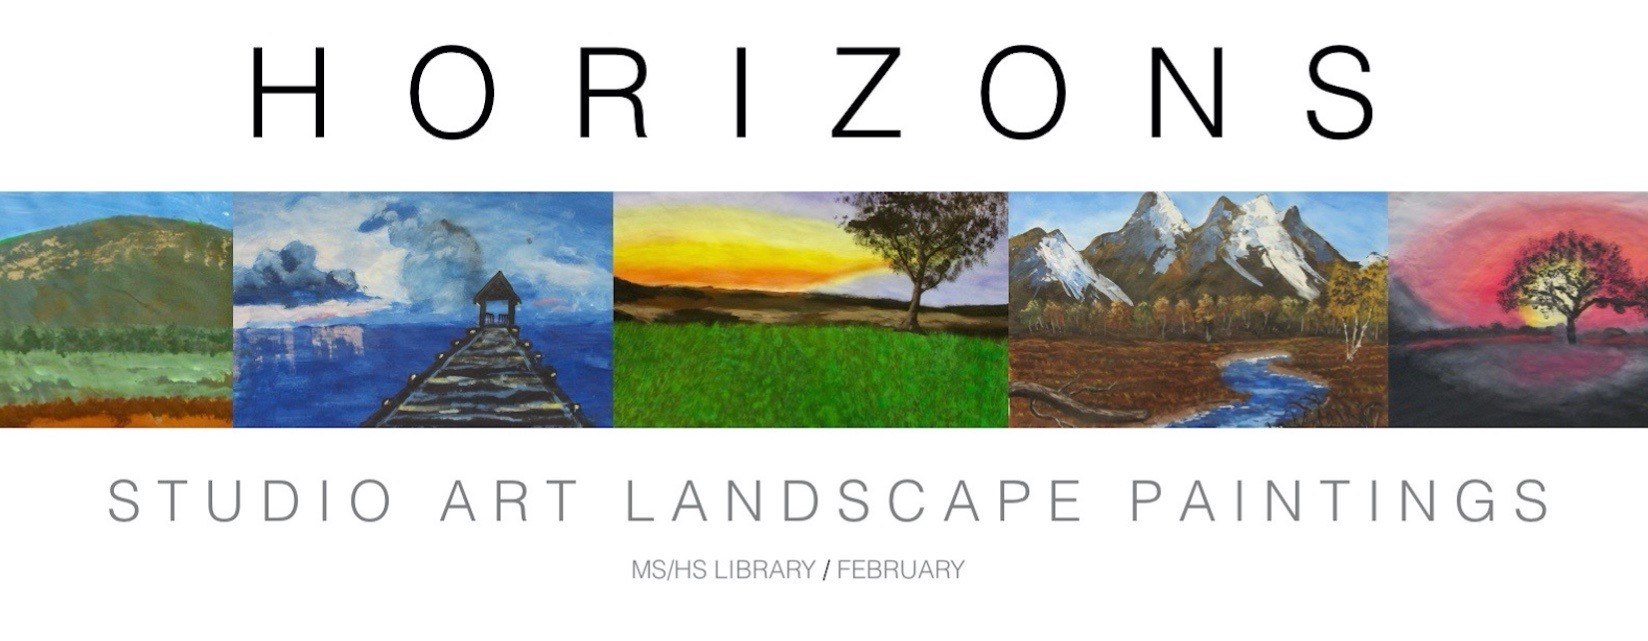 ACSLIB Poster: Promotional poster for student art show featuring landscape paintings.